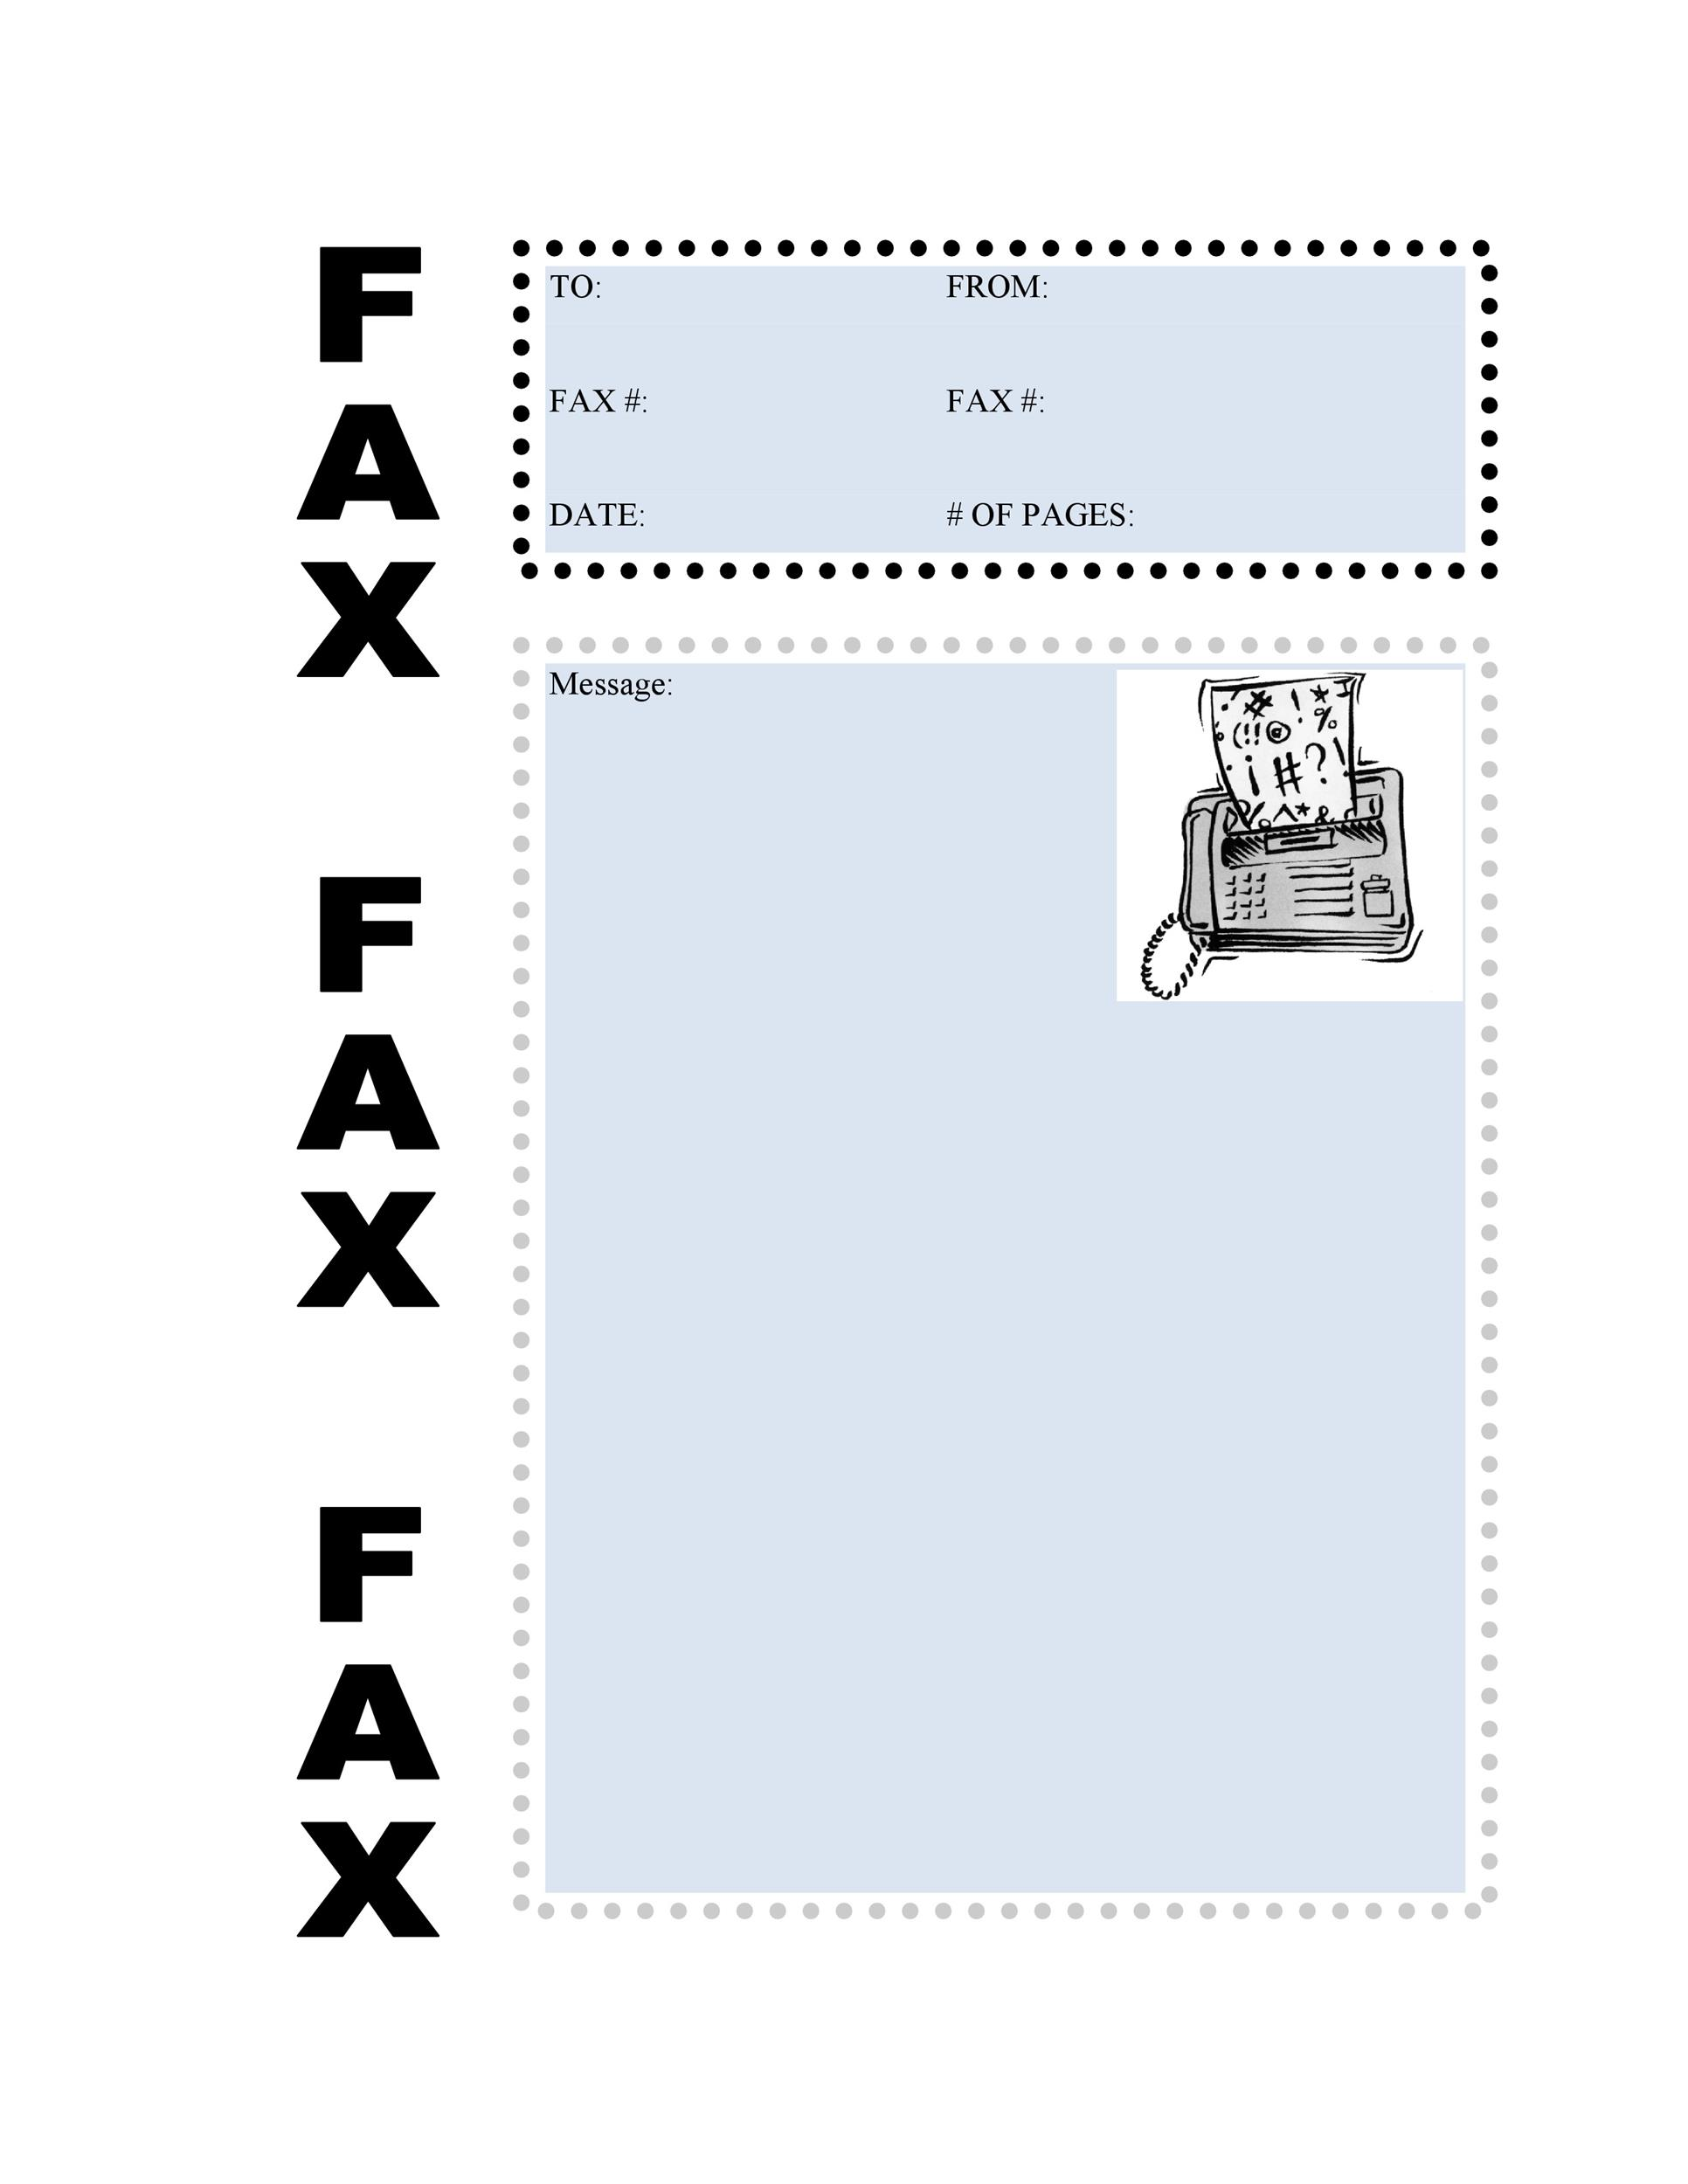 Fax Cover Sheet Template 18